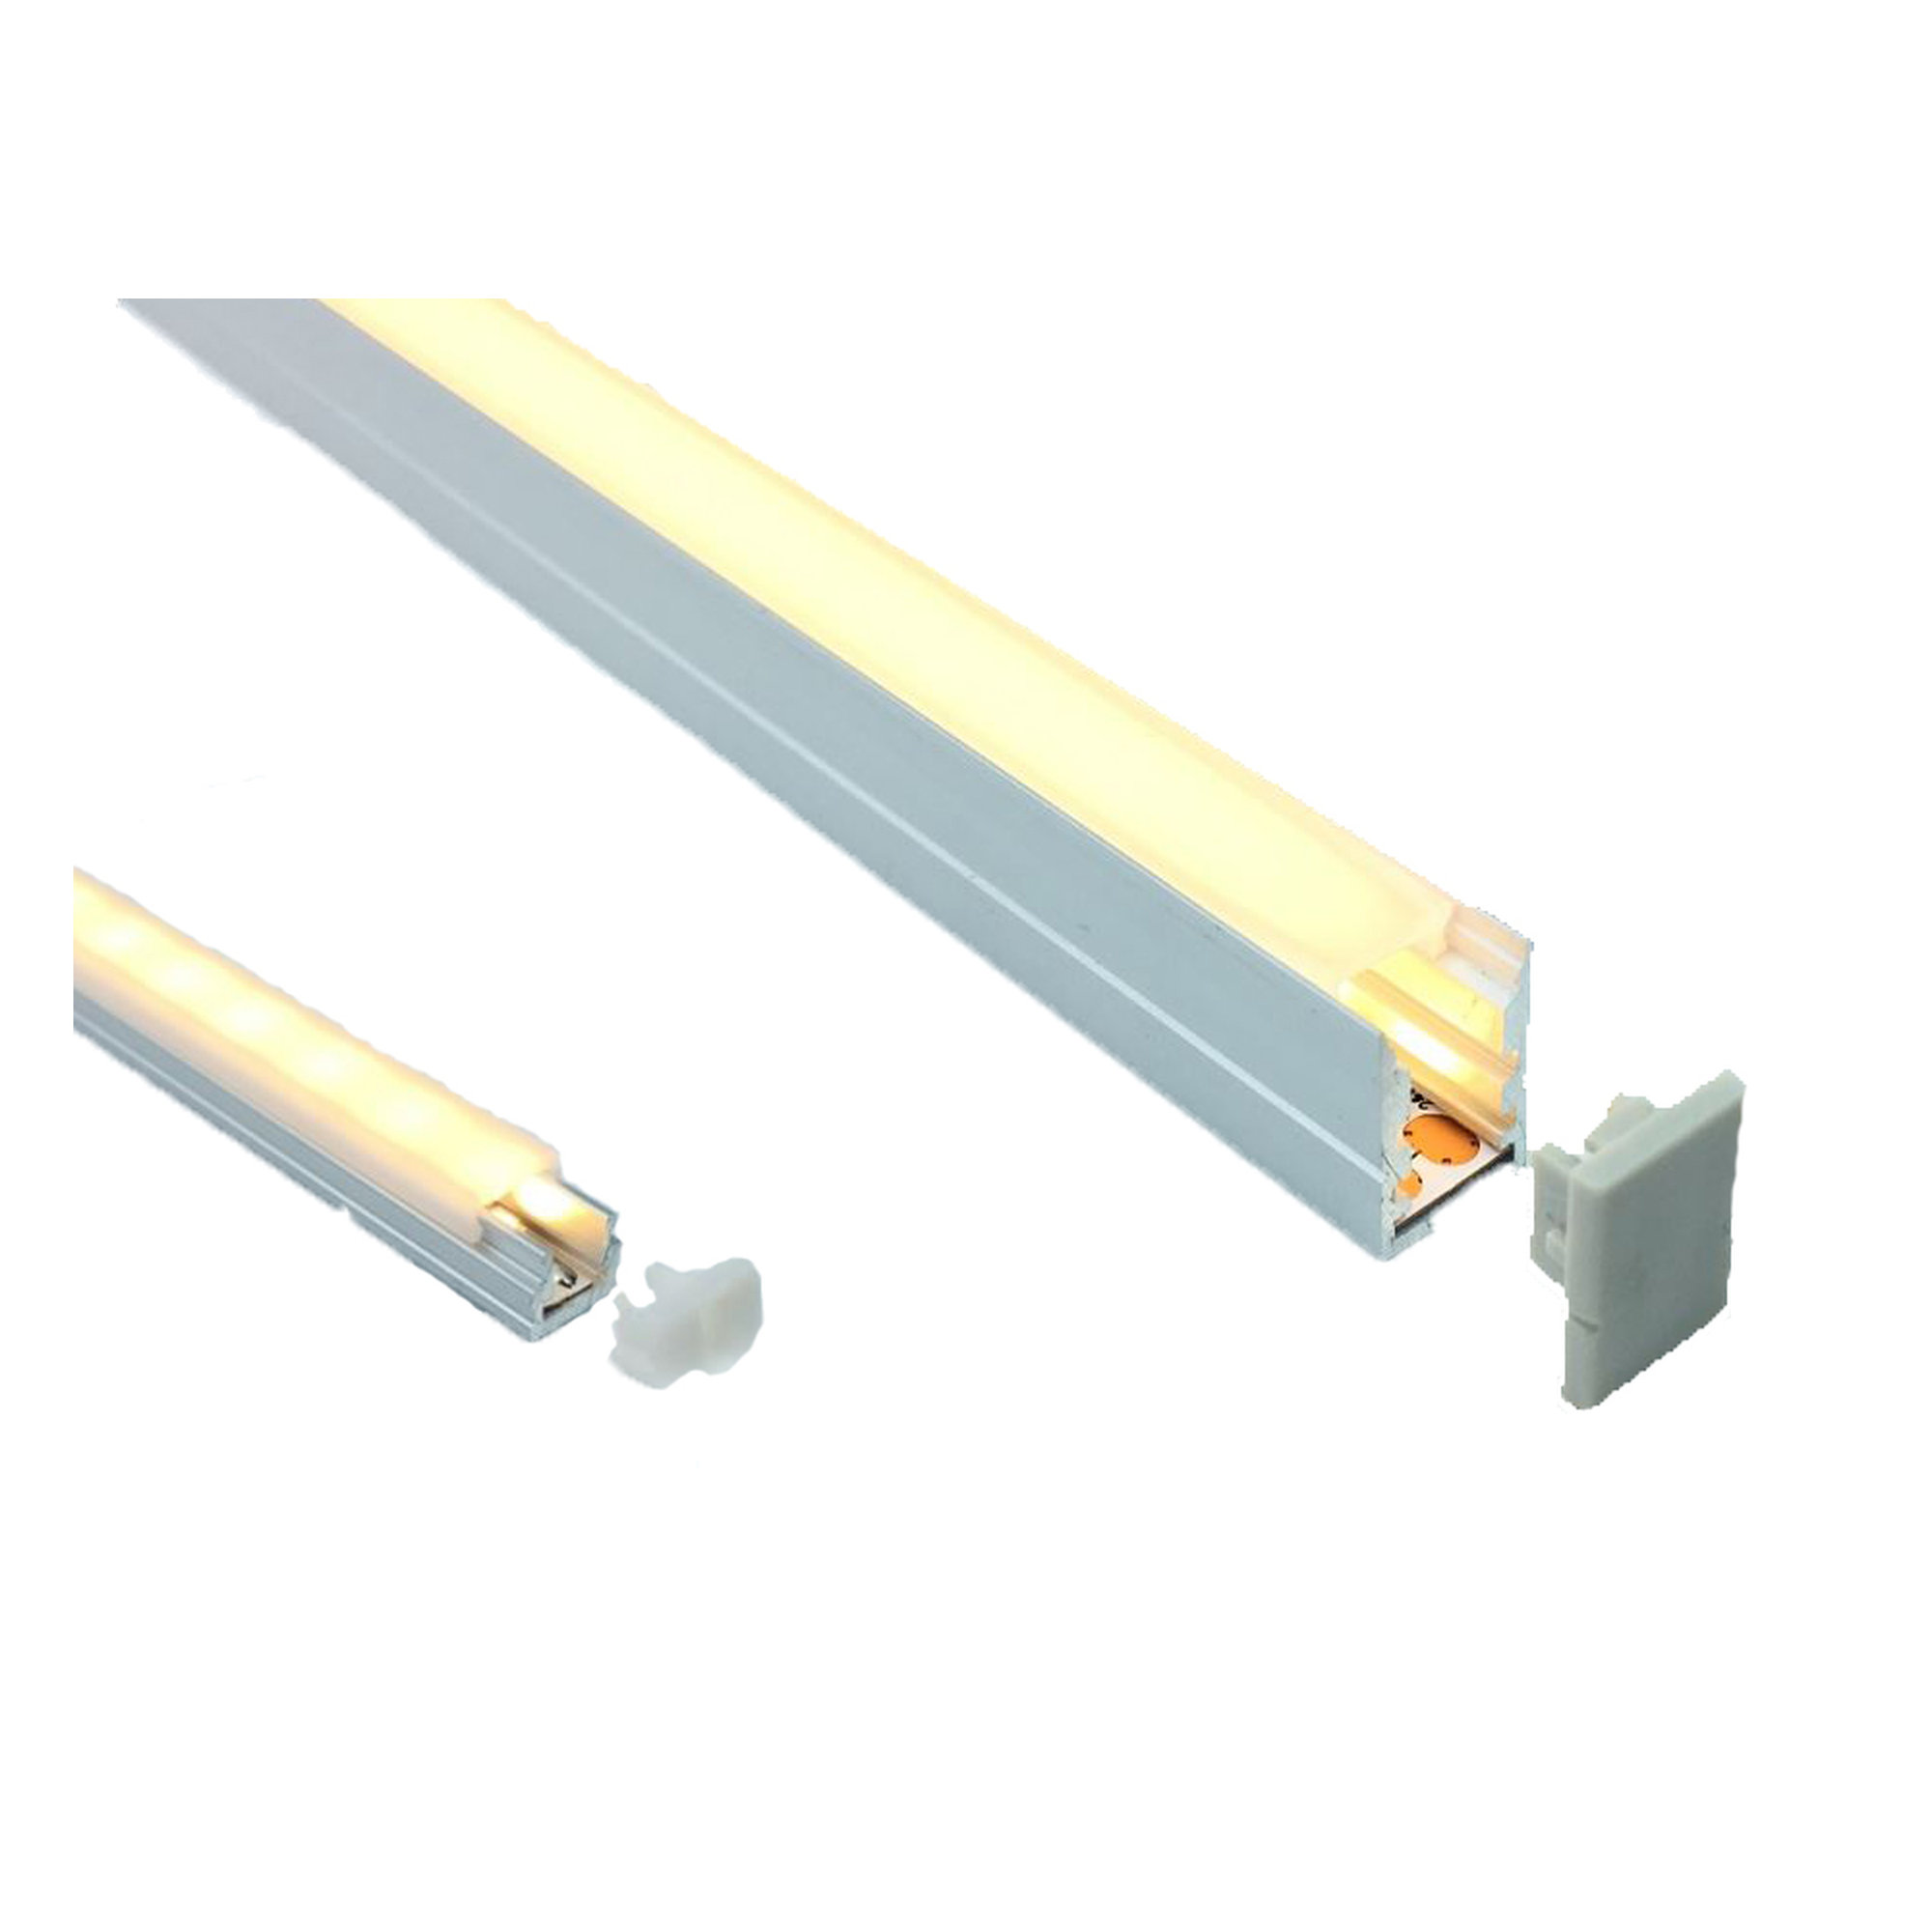 Mounting Bracket for 16 x 16mm Profile